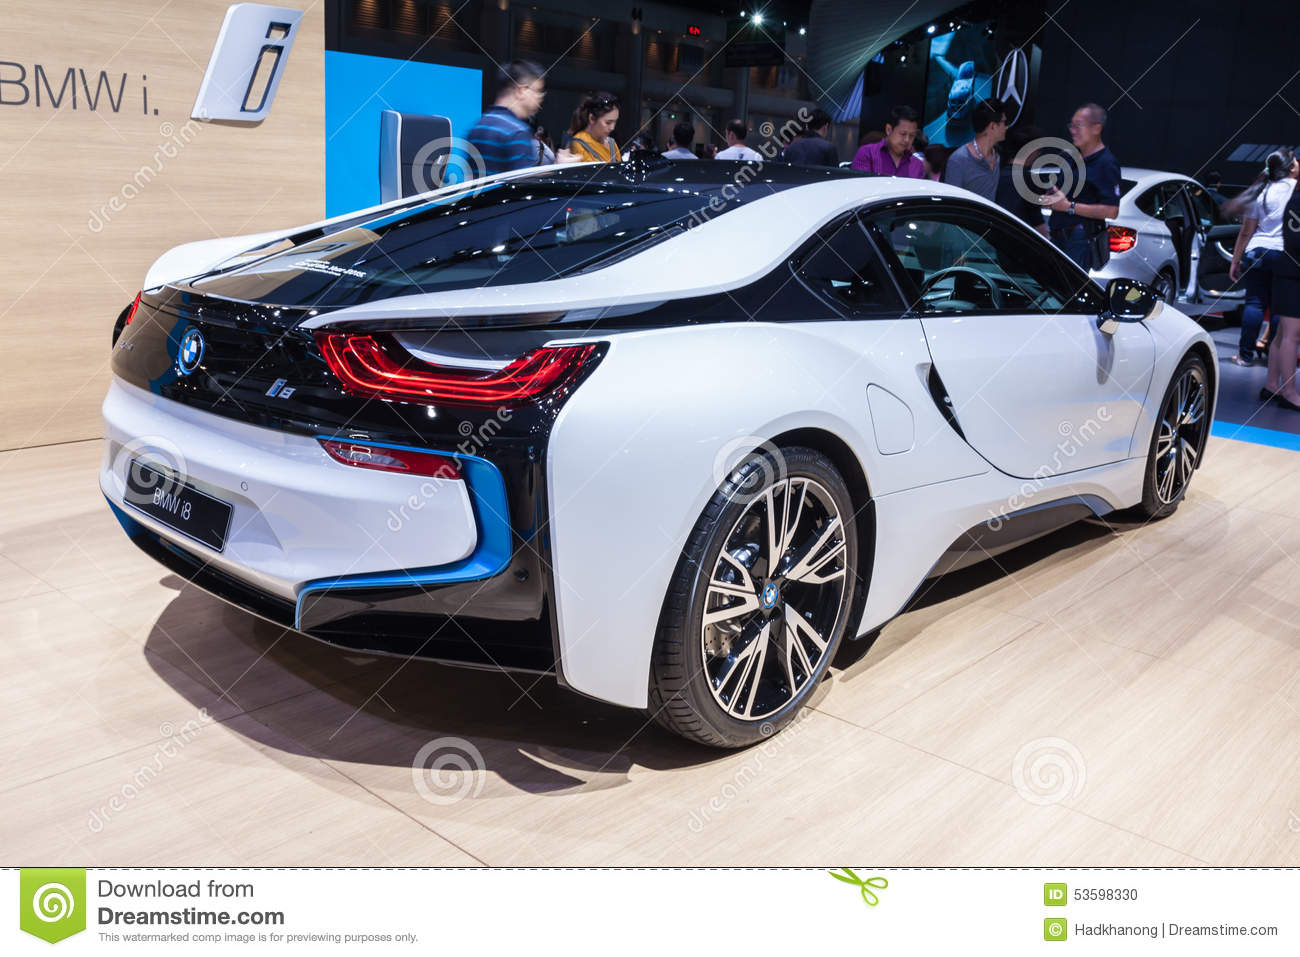 zijaanzicht van bmw i8 een insteek hybride sportwagen redactionele afbeelding afbeelding 53598330. Black Bedroom Furniture Sets. Home Design Ideas